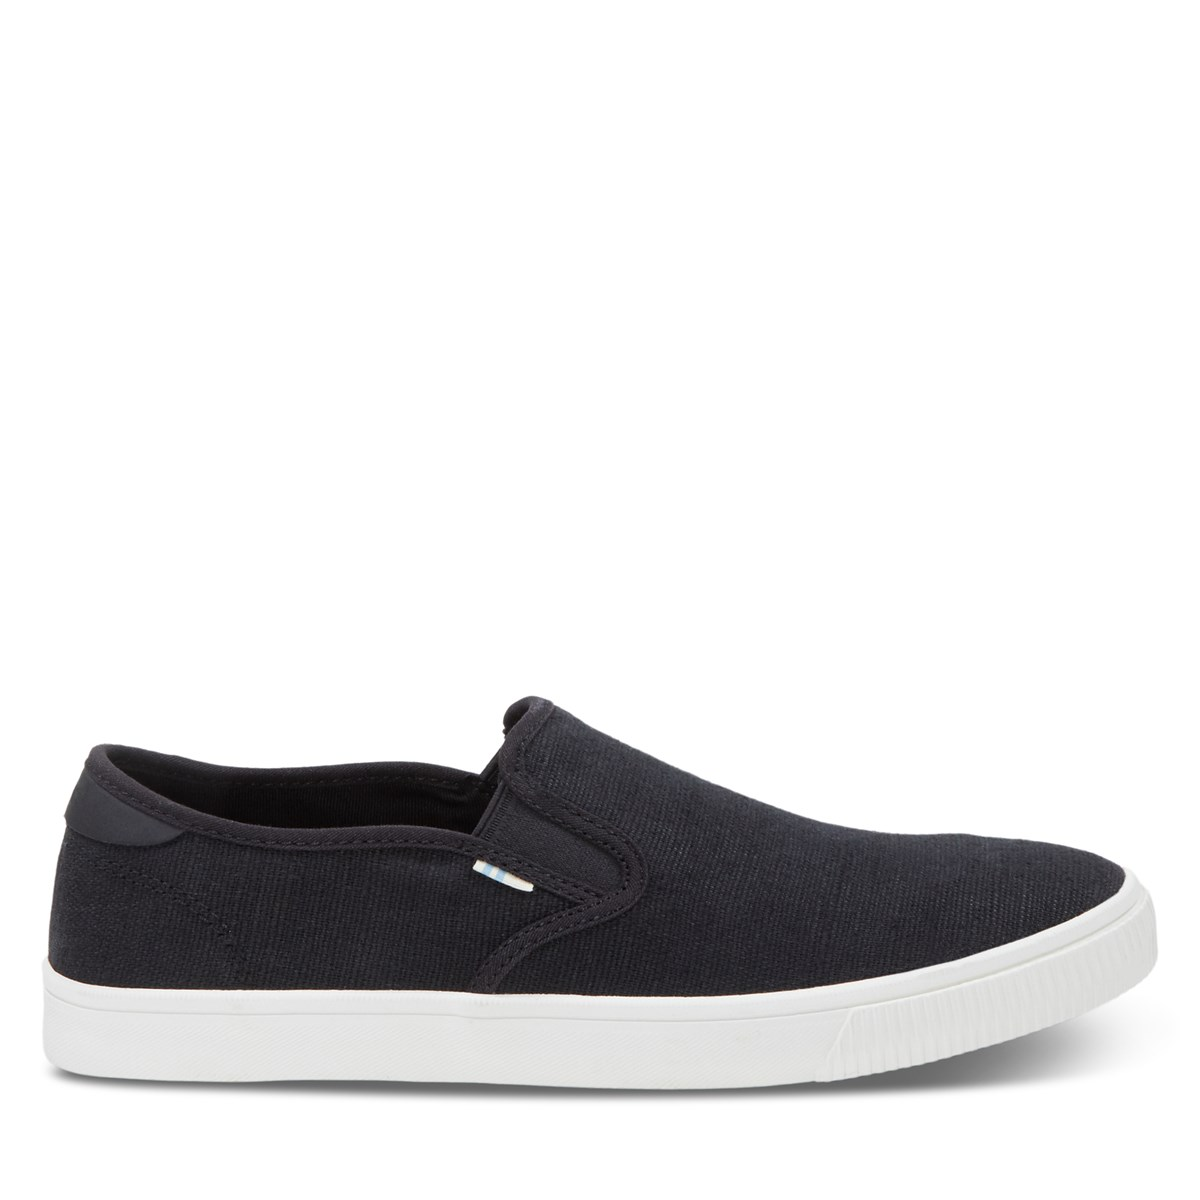 Men's Baja Vegan Slip-Ons in Black